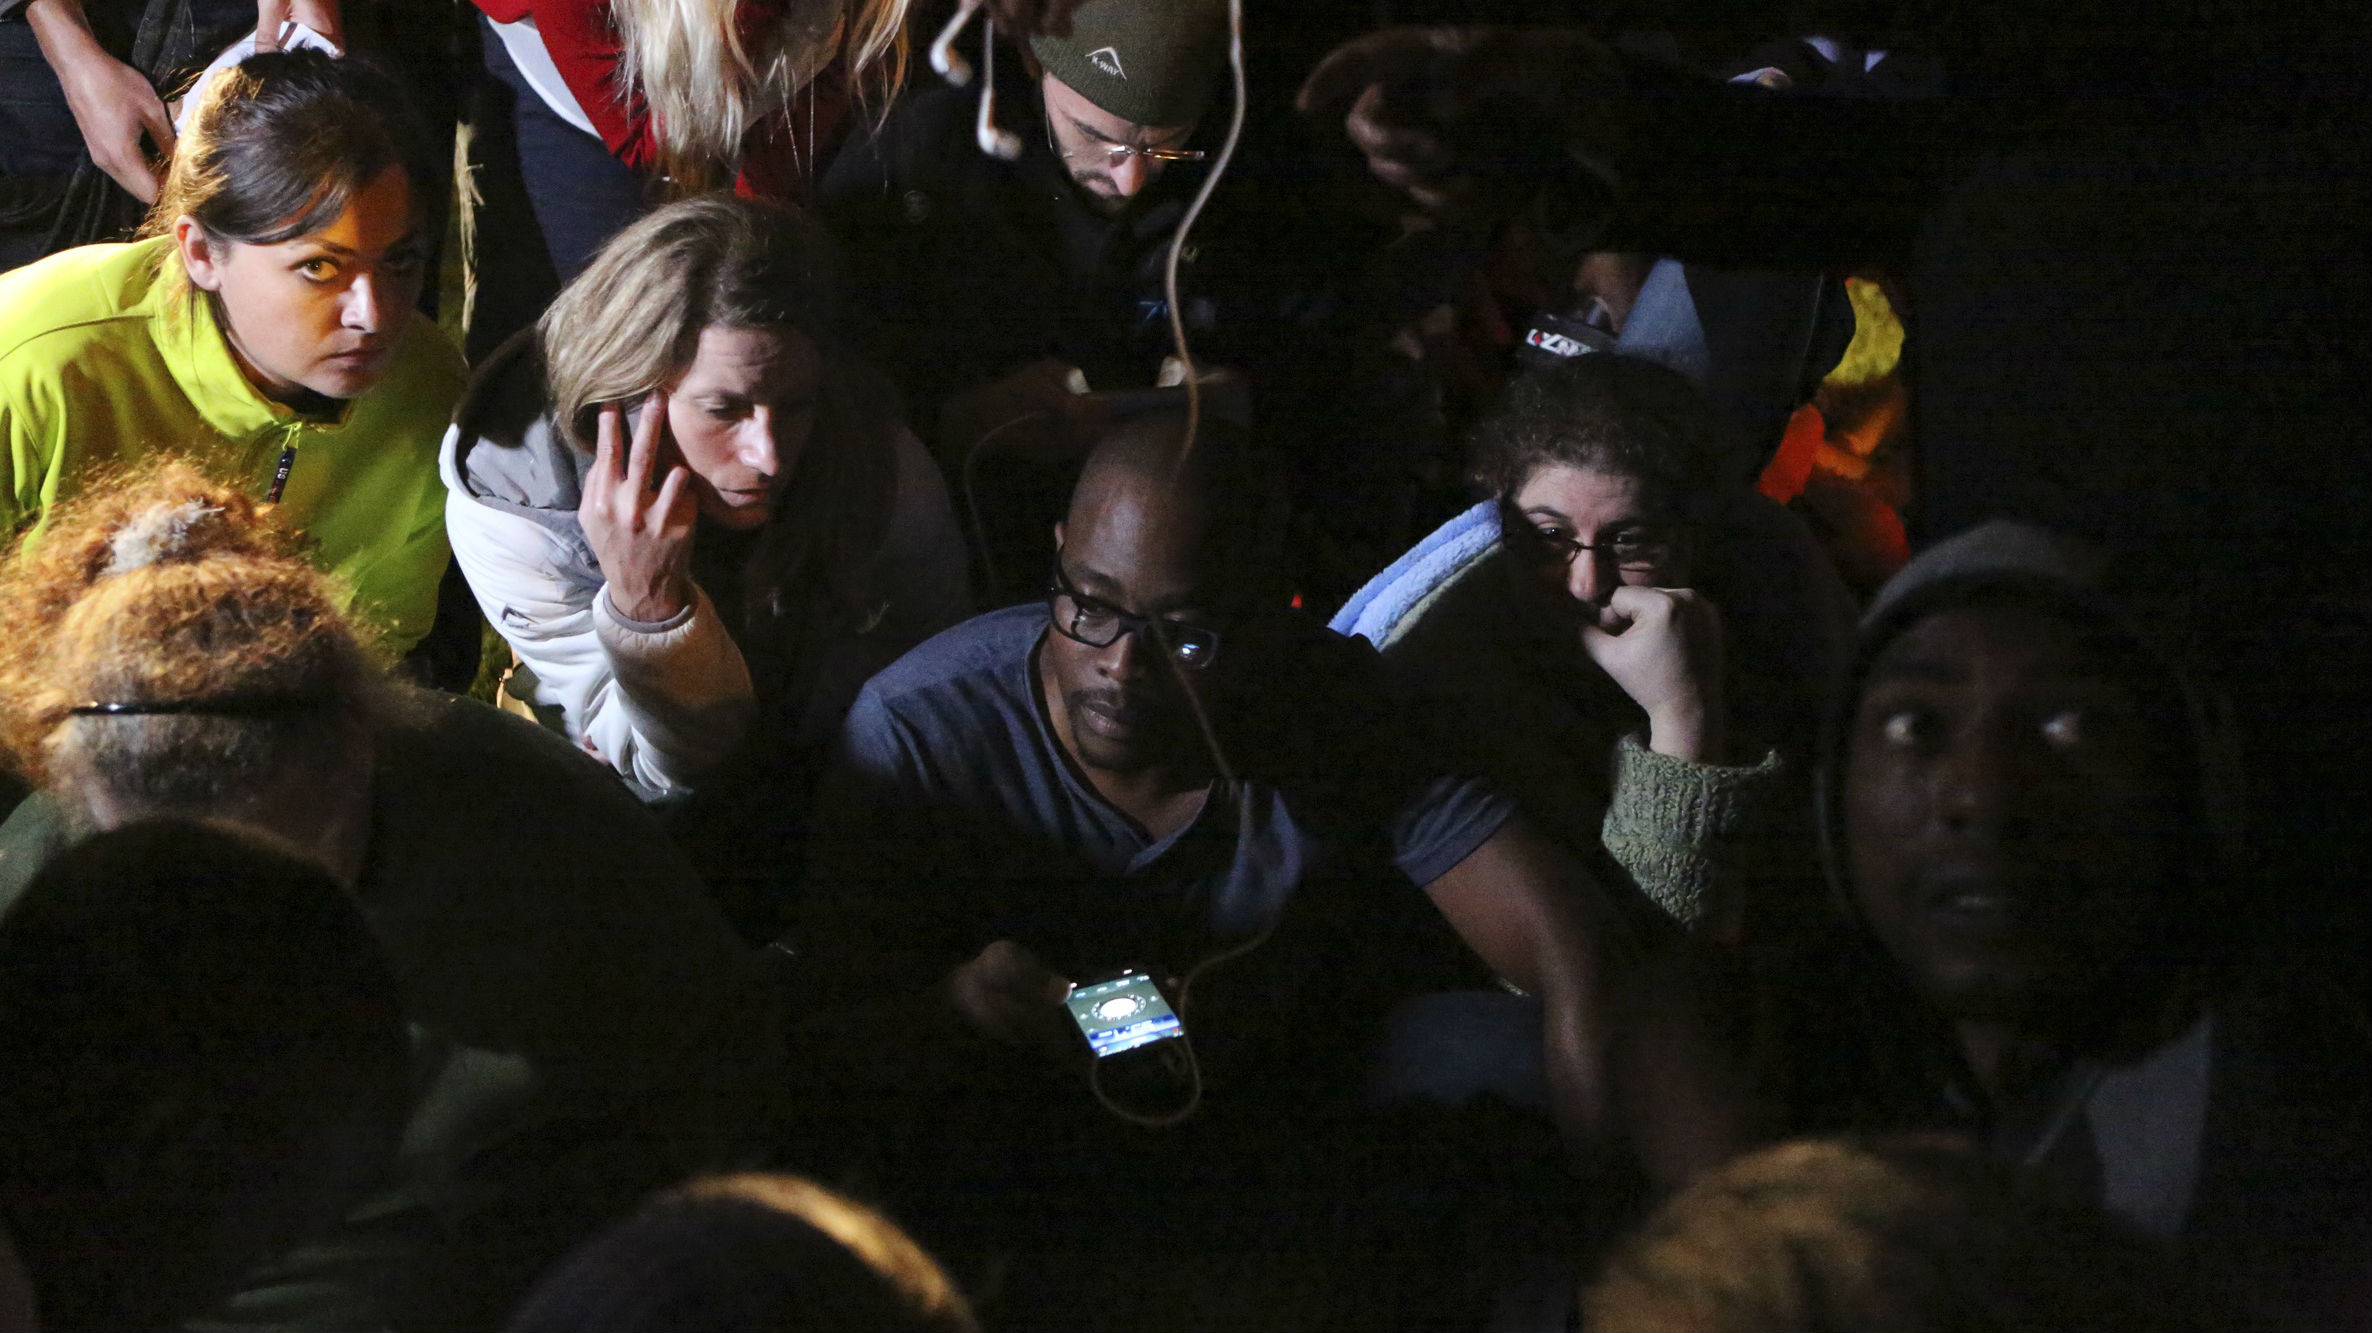 eople listen to a radio as South African President Jacob Zuma announces the death of former South African President Nelson Mandela in Houghton, December 5, 2013. Mandela died peacefully at his Johannesburg home on Thursday after a prolonged lung infection, Zuma said. Mandela, the country's first black president and anti-apartheid icon known in South Africa by his clan name of Madiba, emerged from 27 years in apartheid prisons to help guide South Africa through bloodshed and turmoil to democracy.